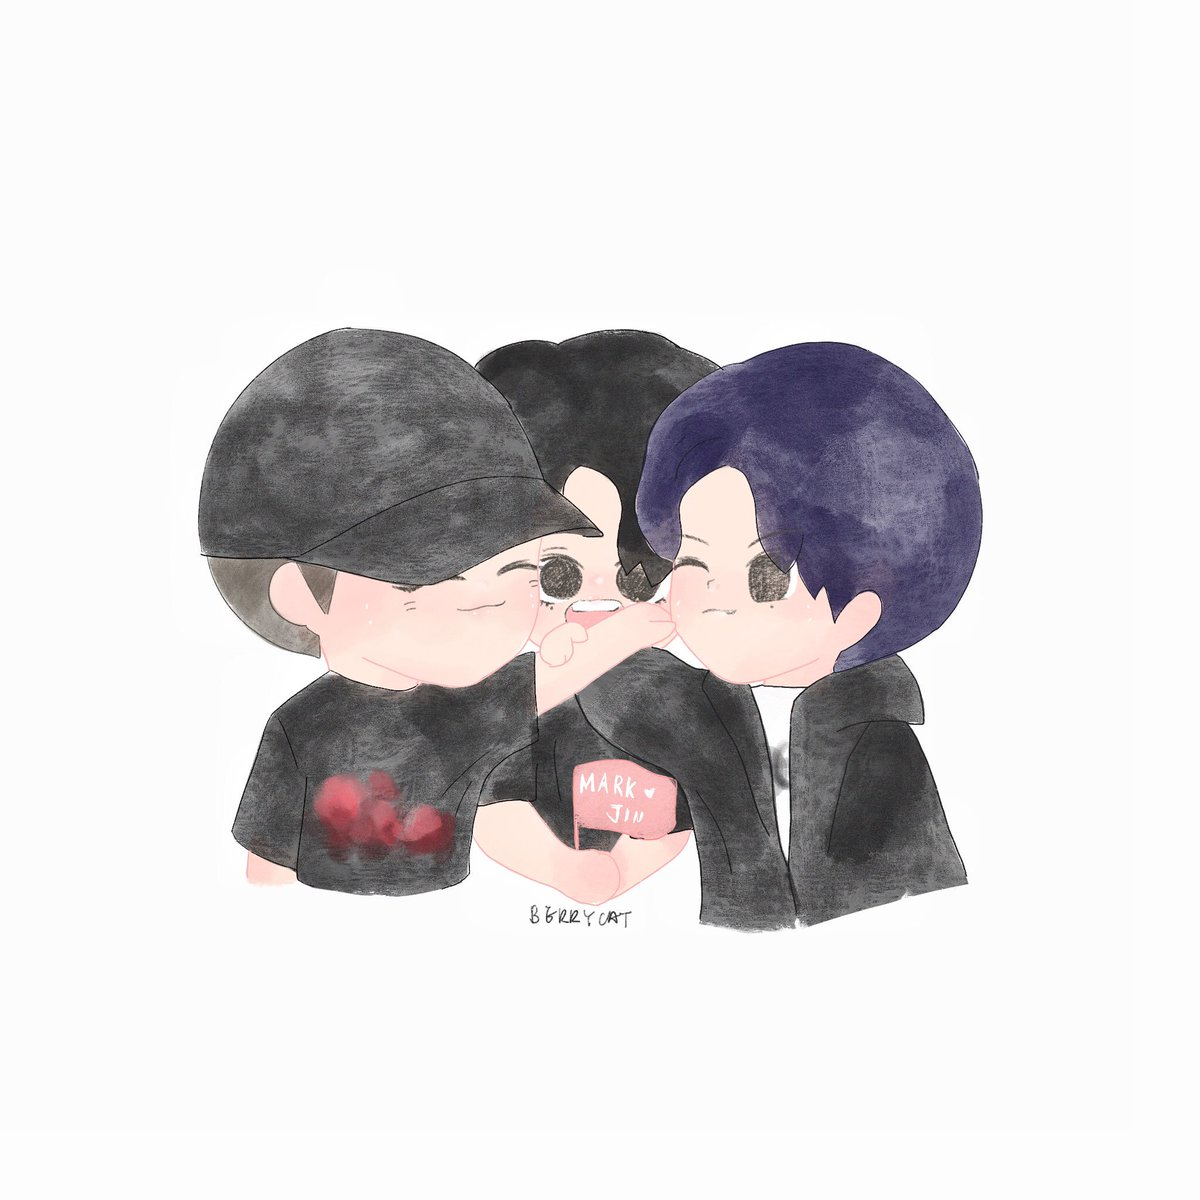 poor Gyeomie  In the middle of #MarkJin   #GOT7fanart #MarkTuan #Jinyoung #Yugyeom #markjingyeom<br>http://pic.twitter.com/bqGt4vHTA2